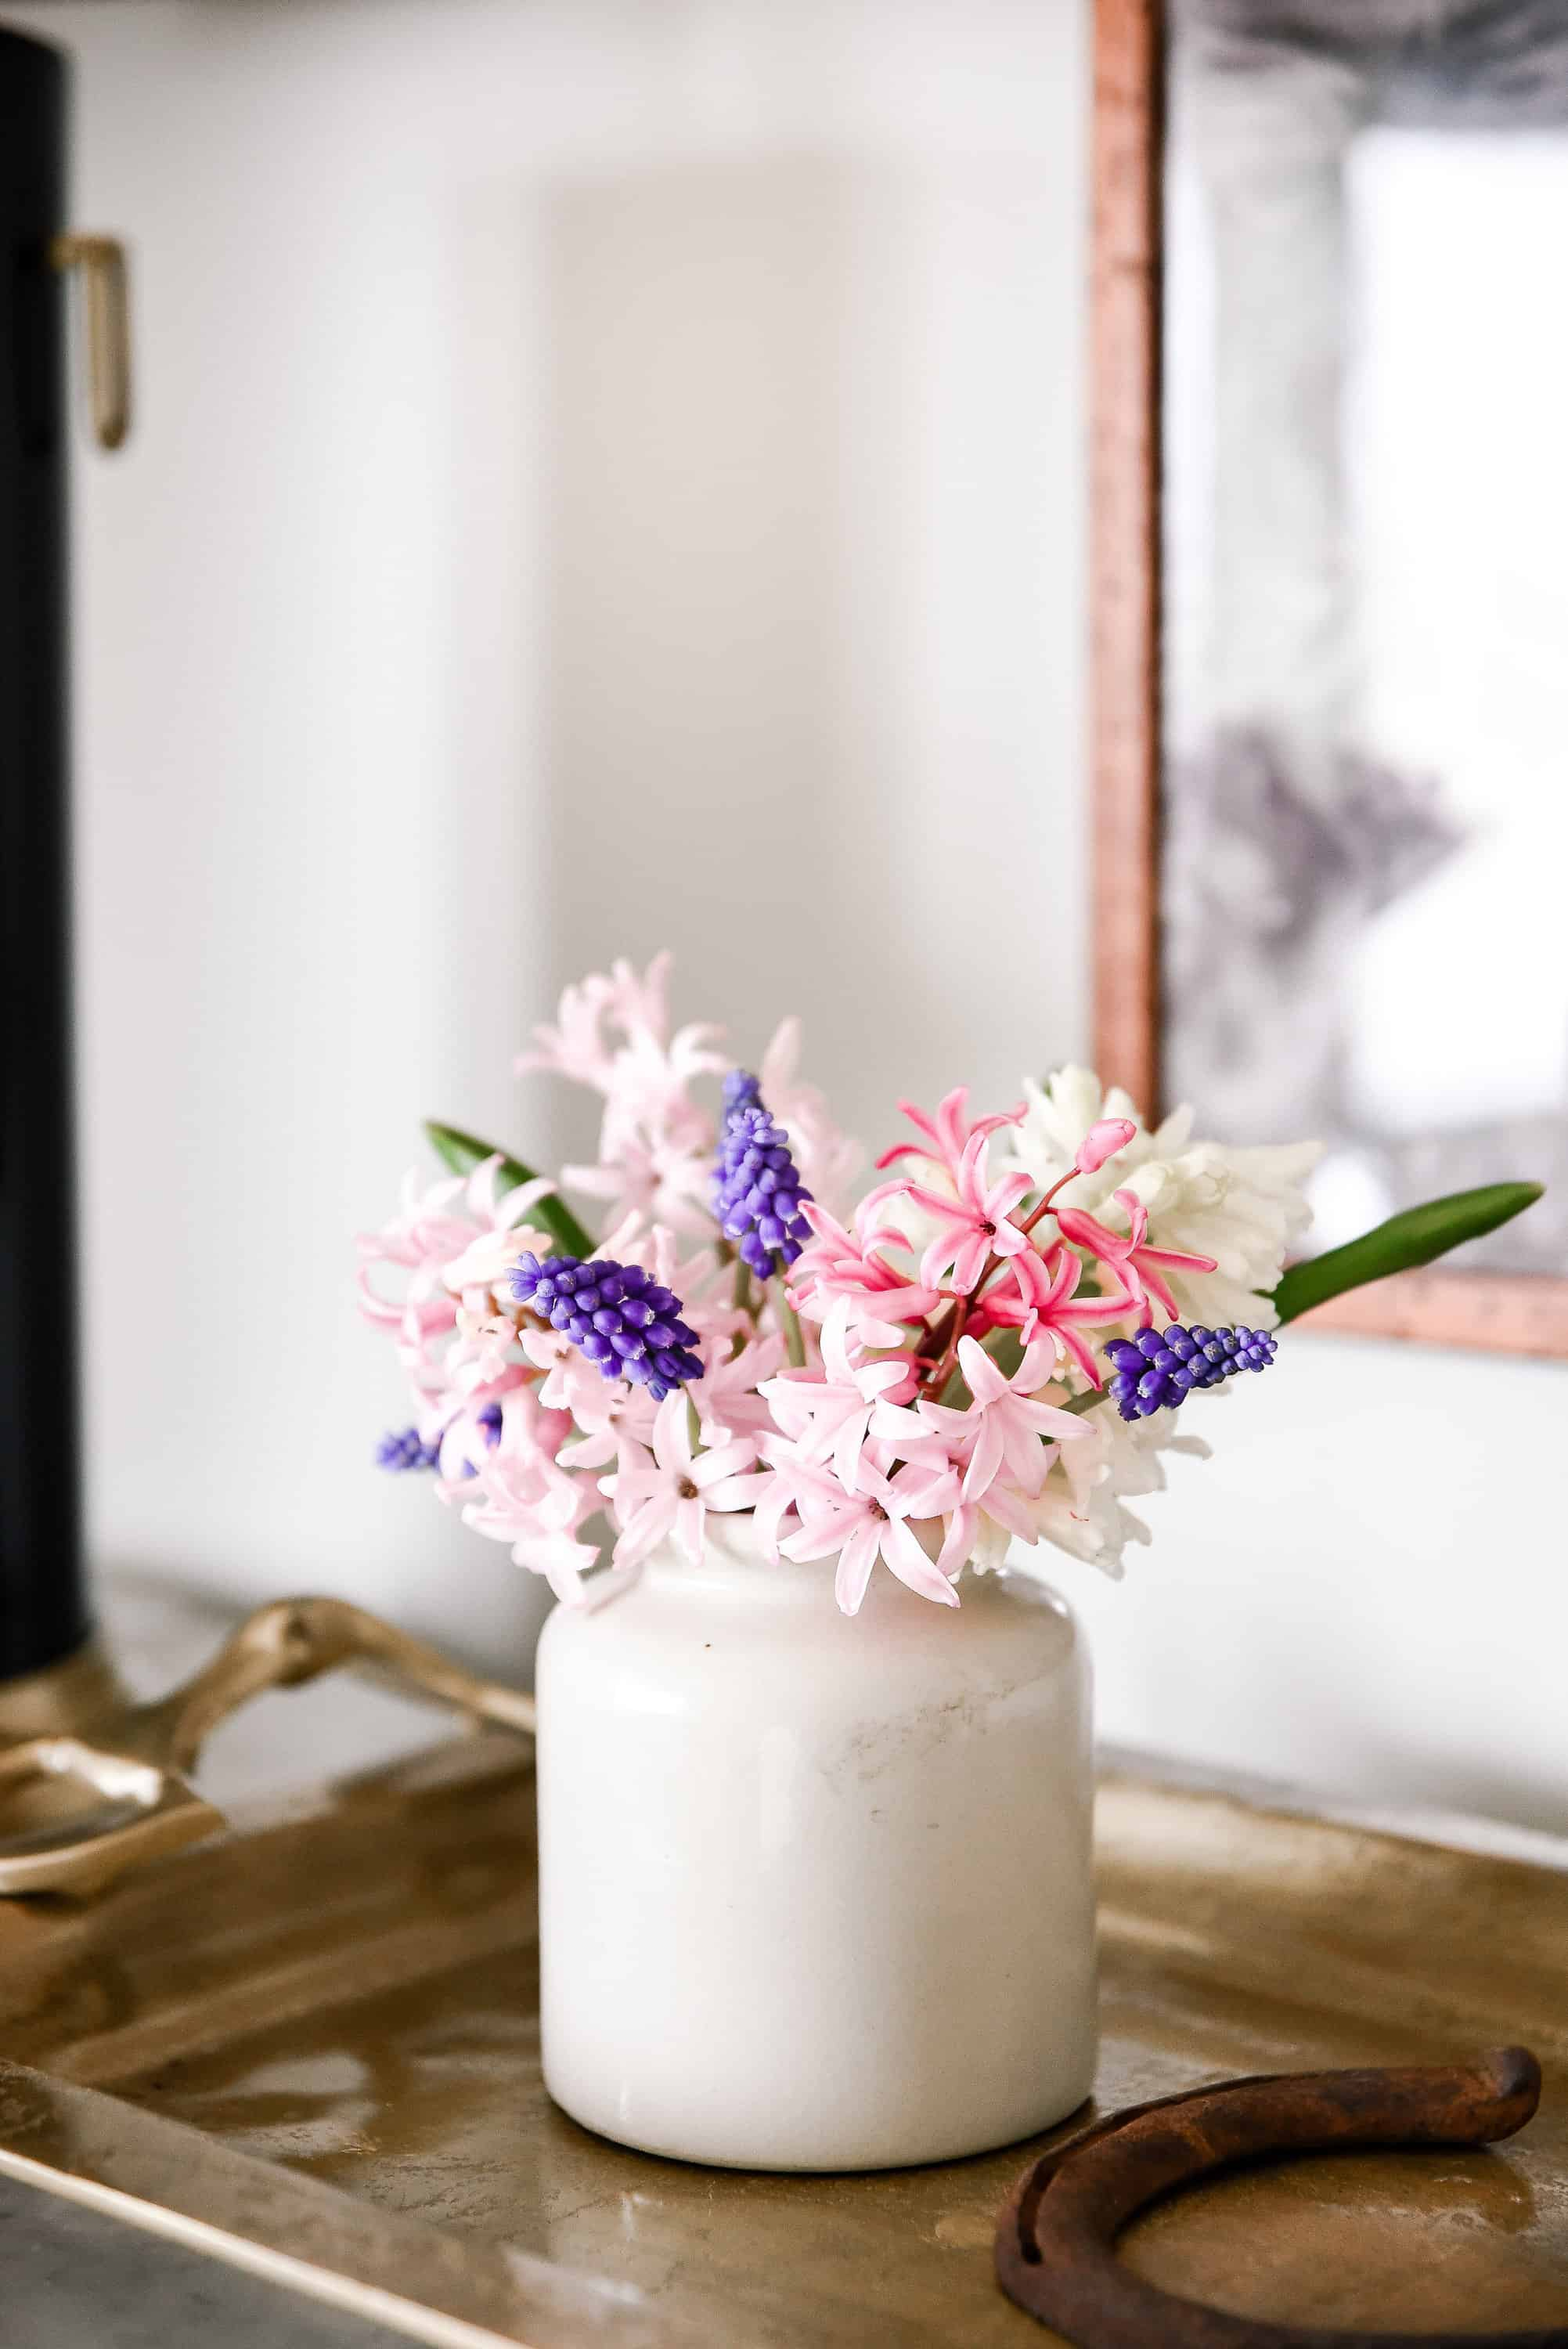 Forcing hyacinth bulbs indoors is easy with just a little preparation! Read below to learn how to force spring bulbs indoors!